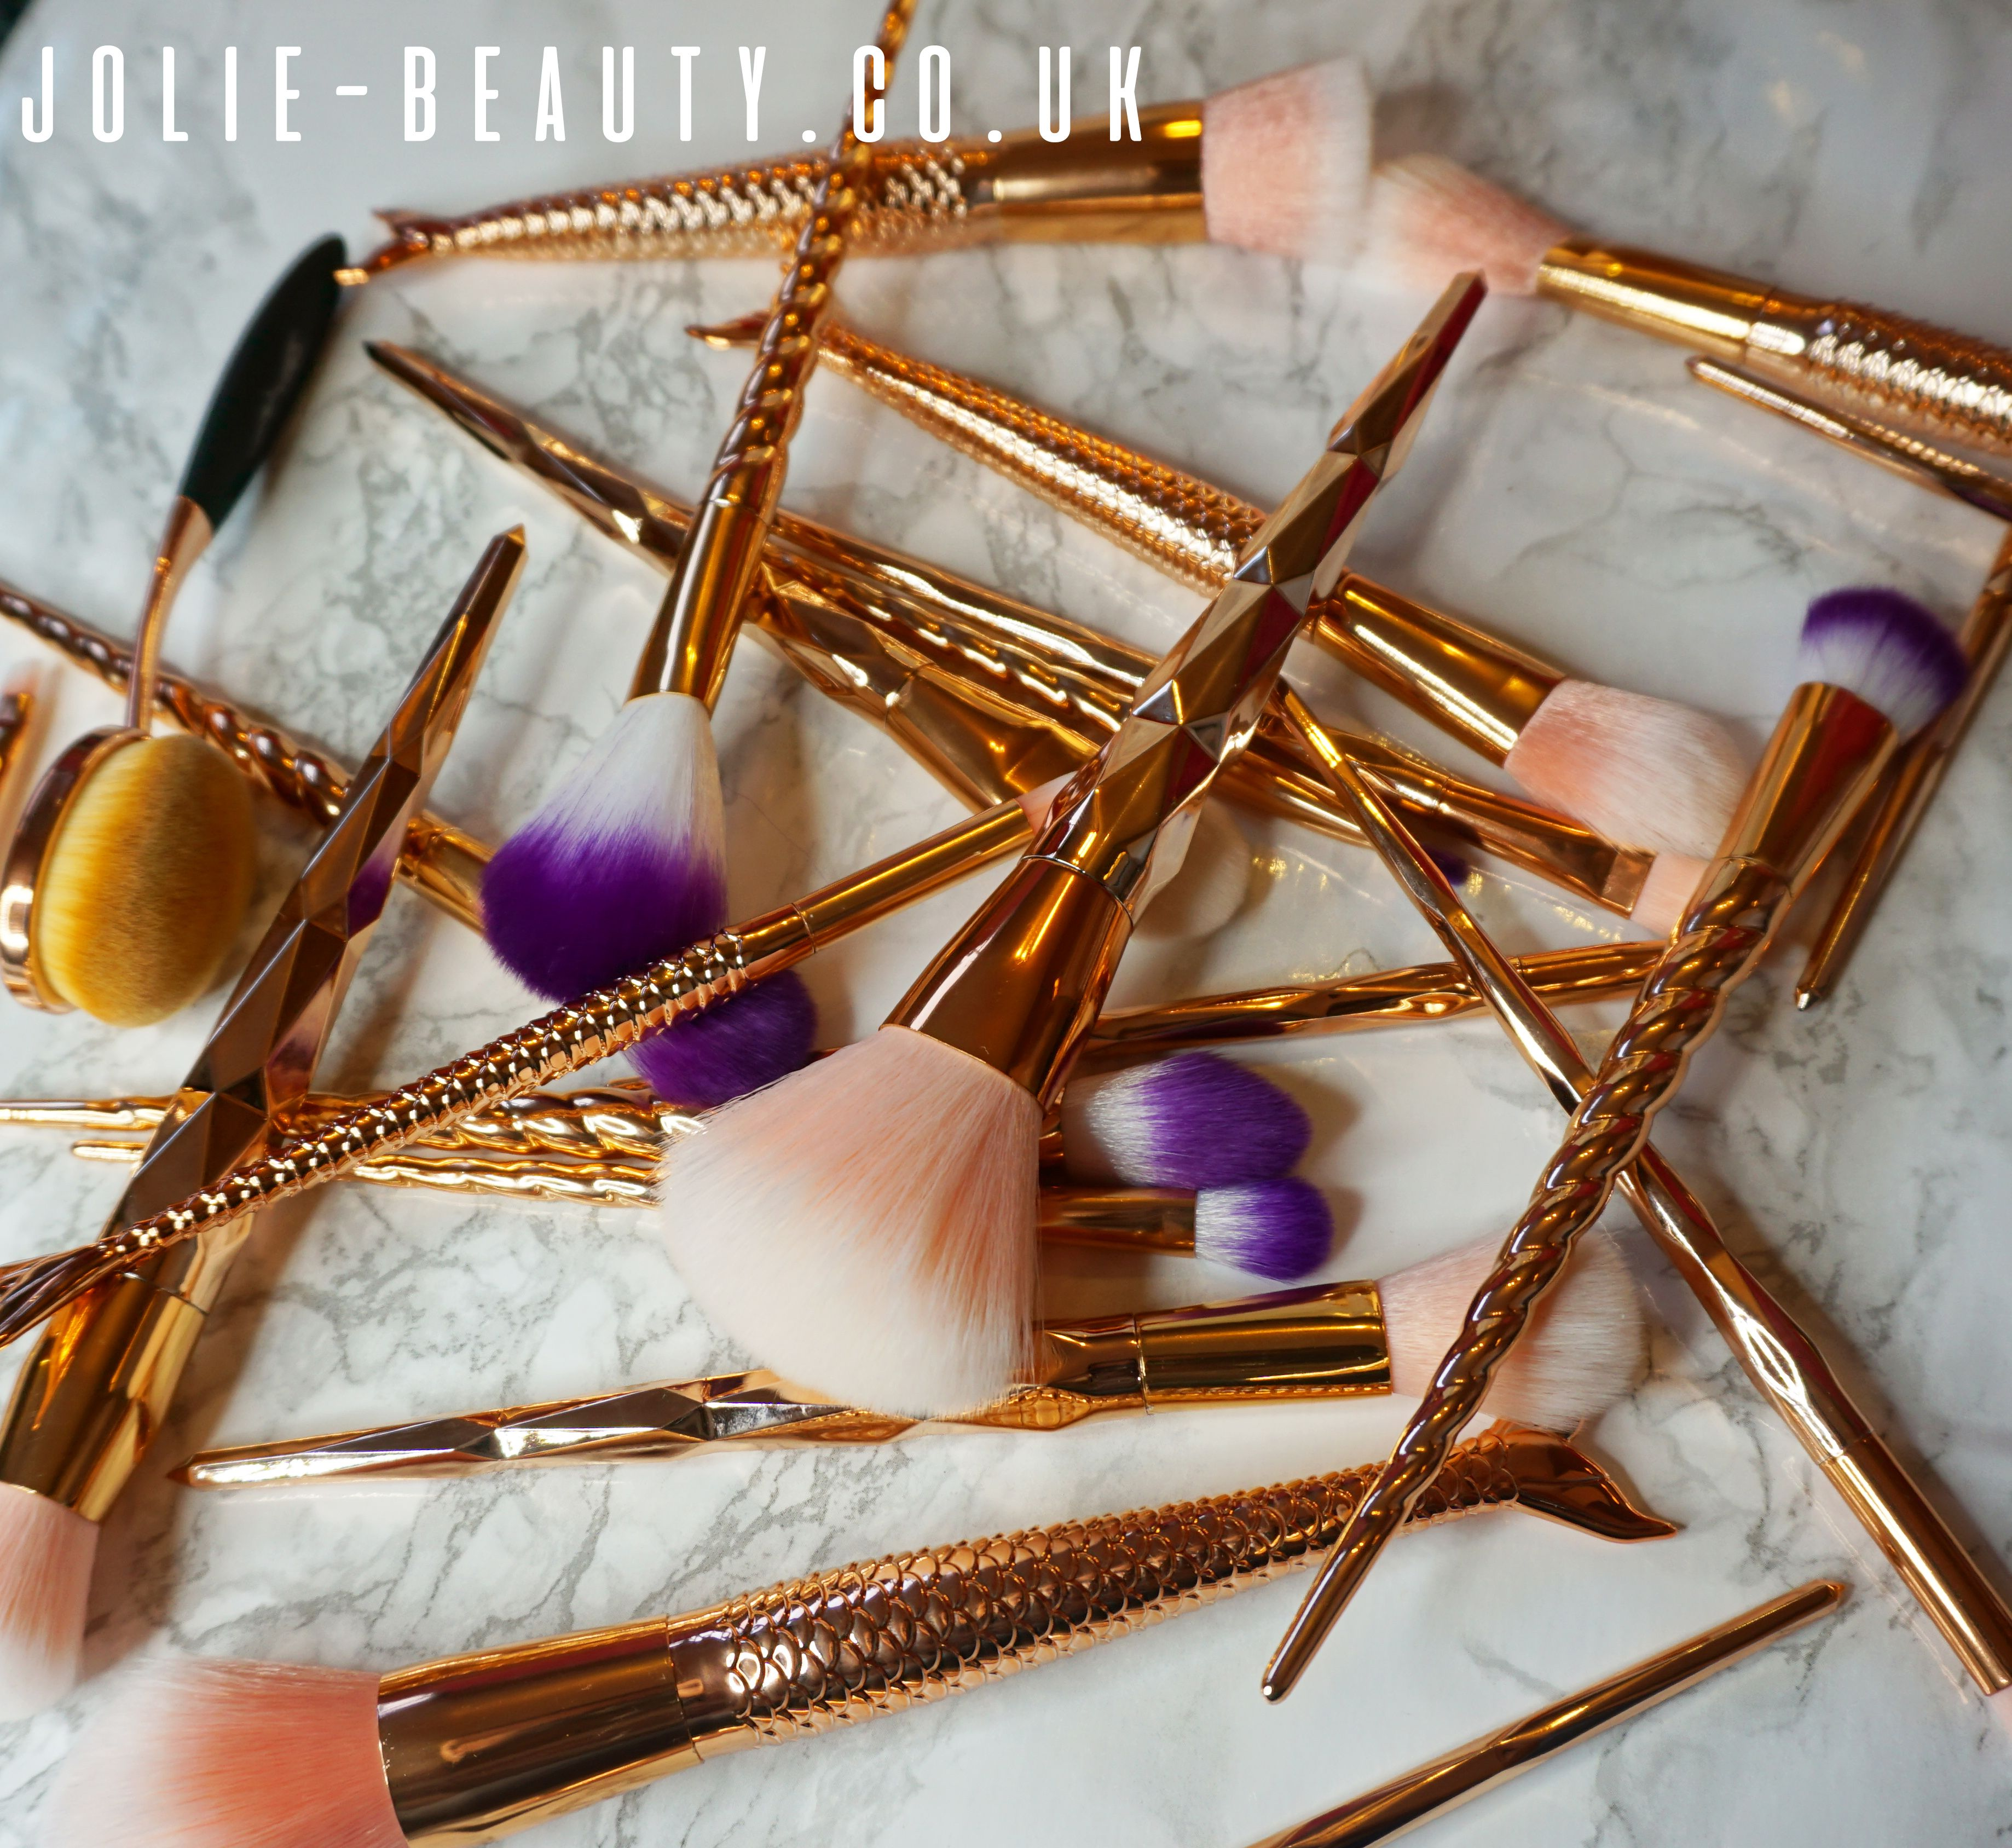 Just a selection of the rose gold makeup brushes available